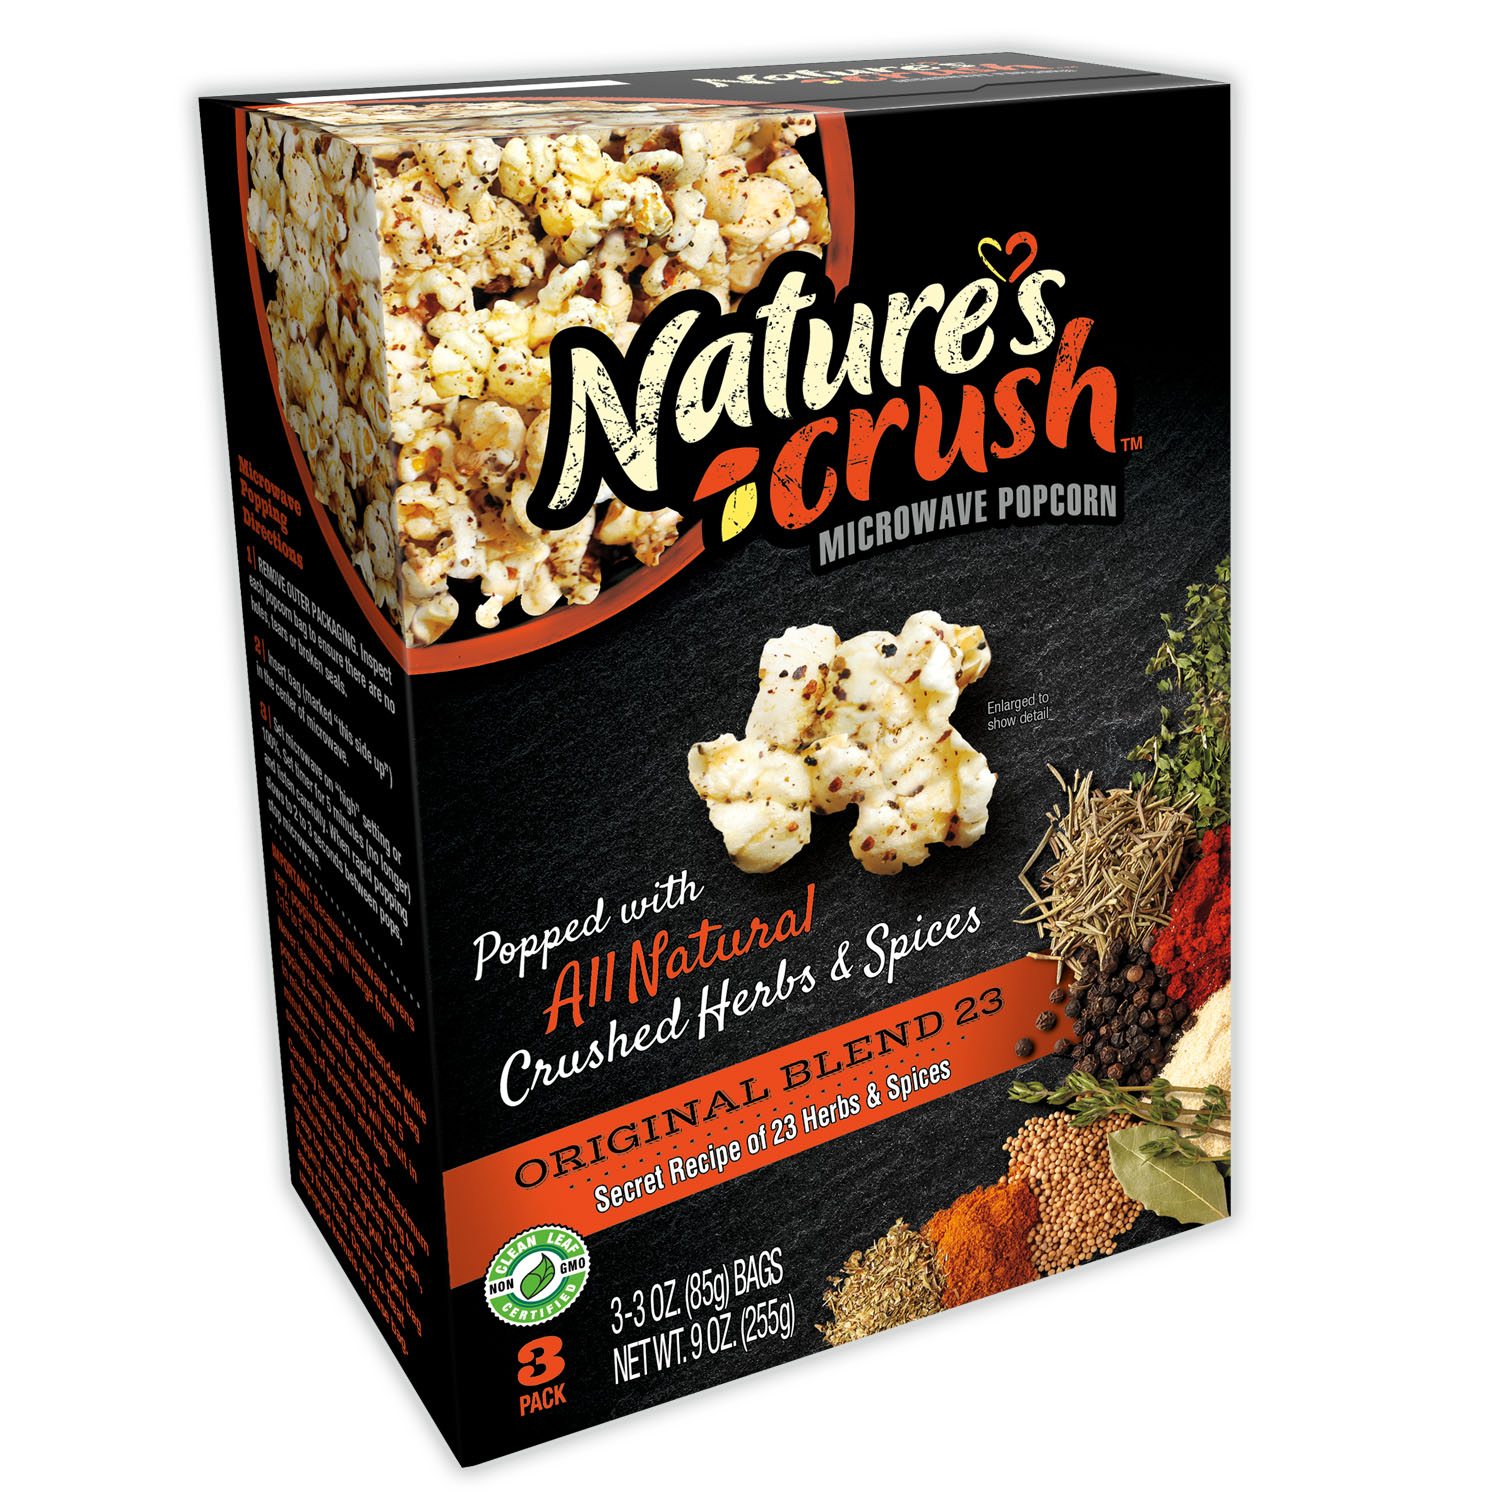 2_NaturesCrush_OriginalBlend_1pack.jpg